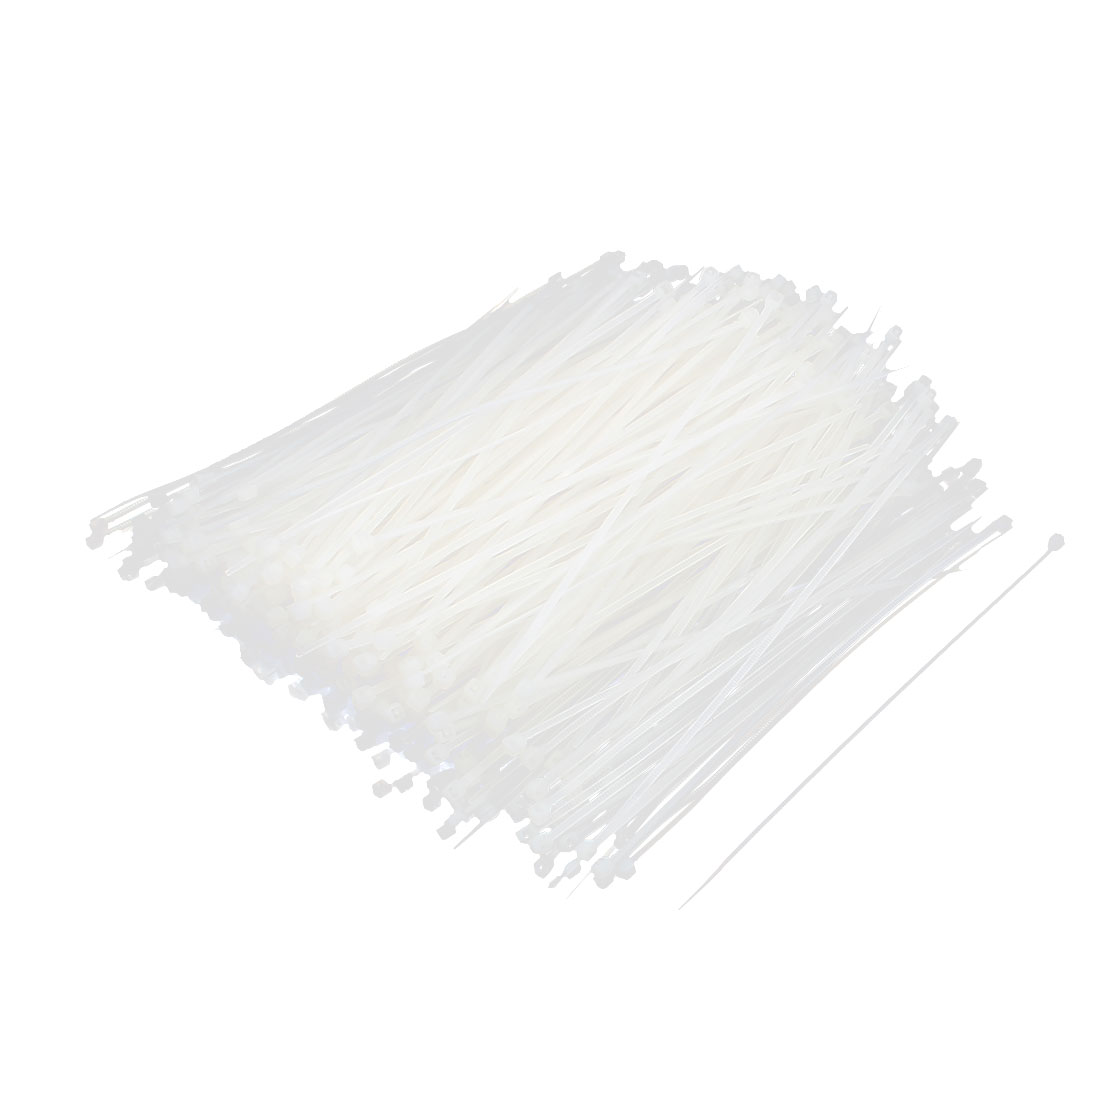 685 Pcs 150x2mm Nylon Cable Core Wire Zip Tie Straps Reusable Fasteners White